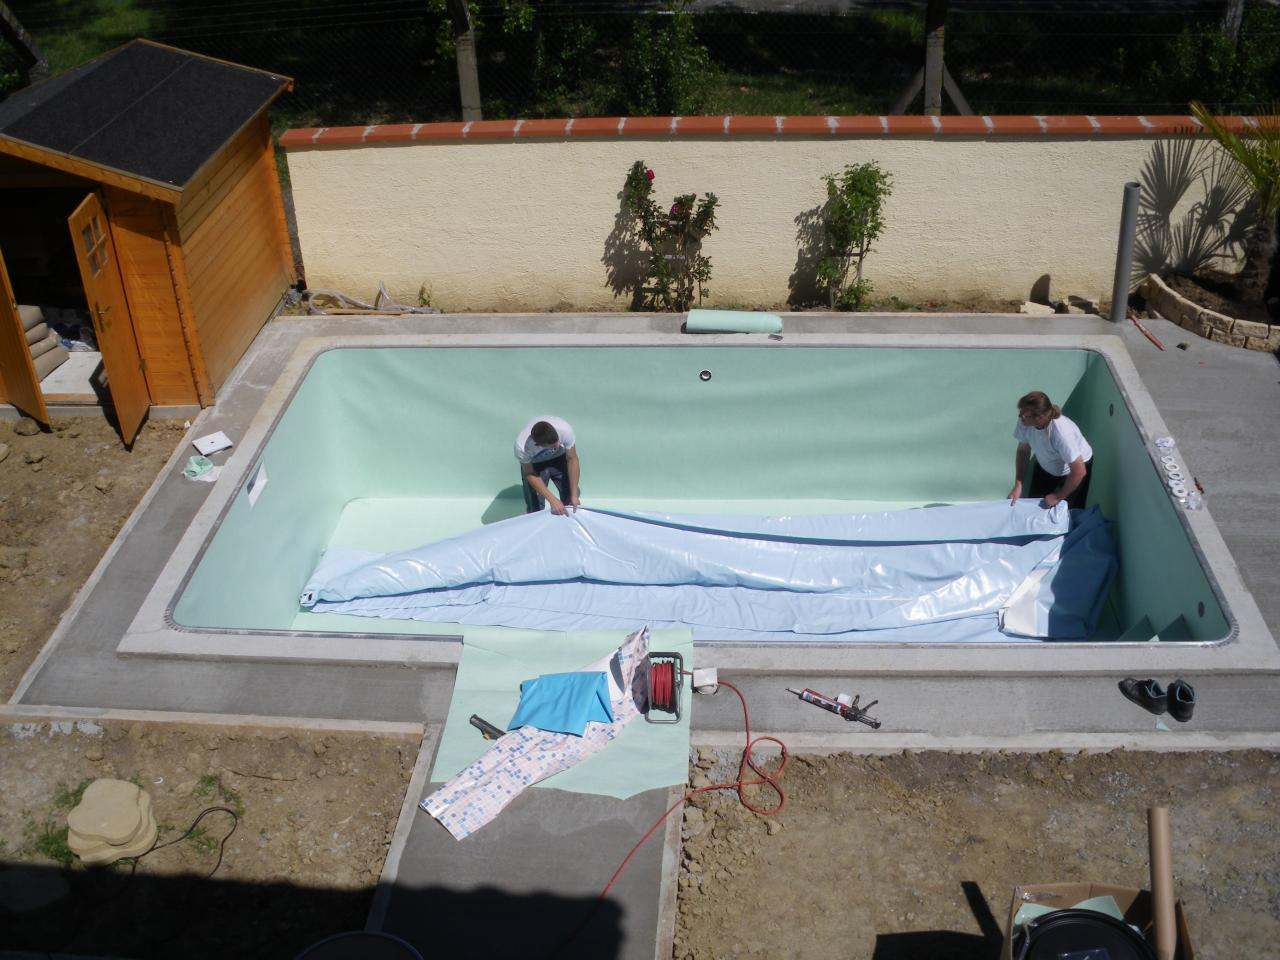 Piscine guide choix de solution co t et devis en ligne for Piscine technique